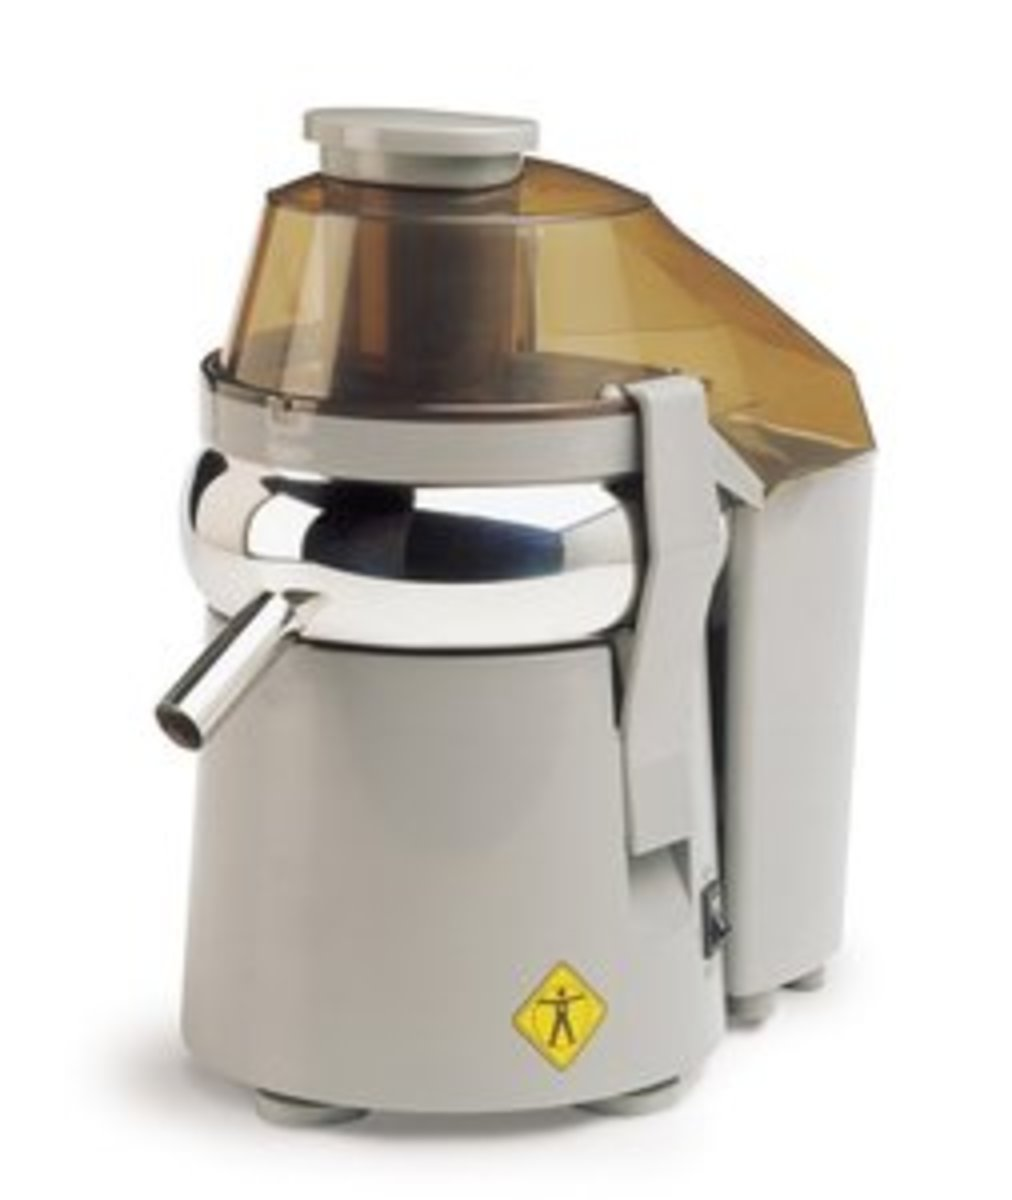 L'EQUIP 306150 MINI PULP EJECTION JUICER